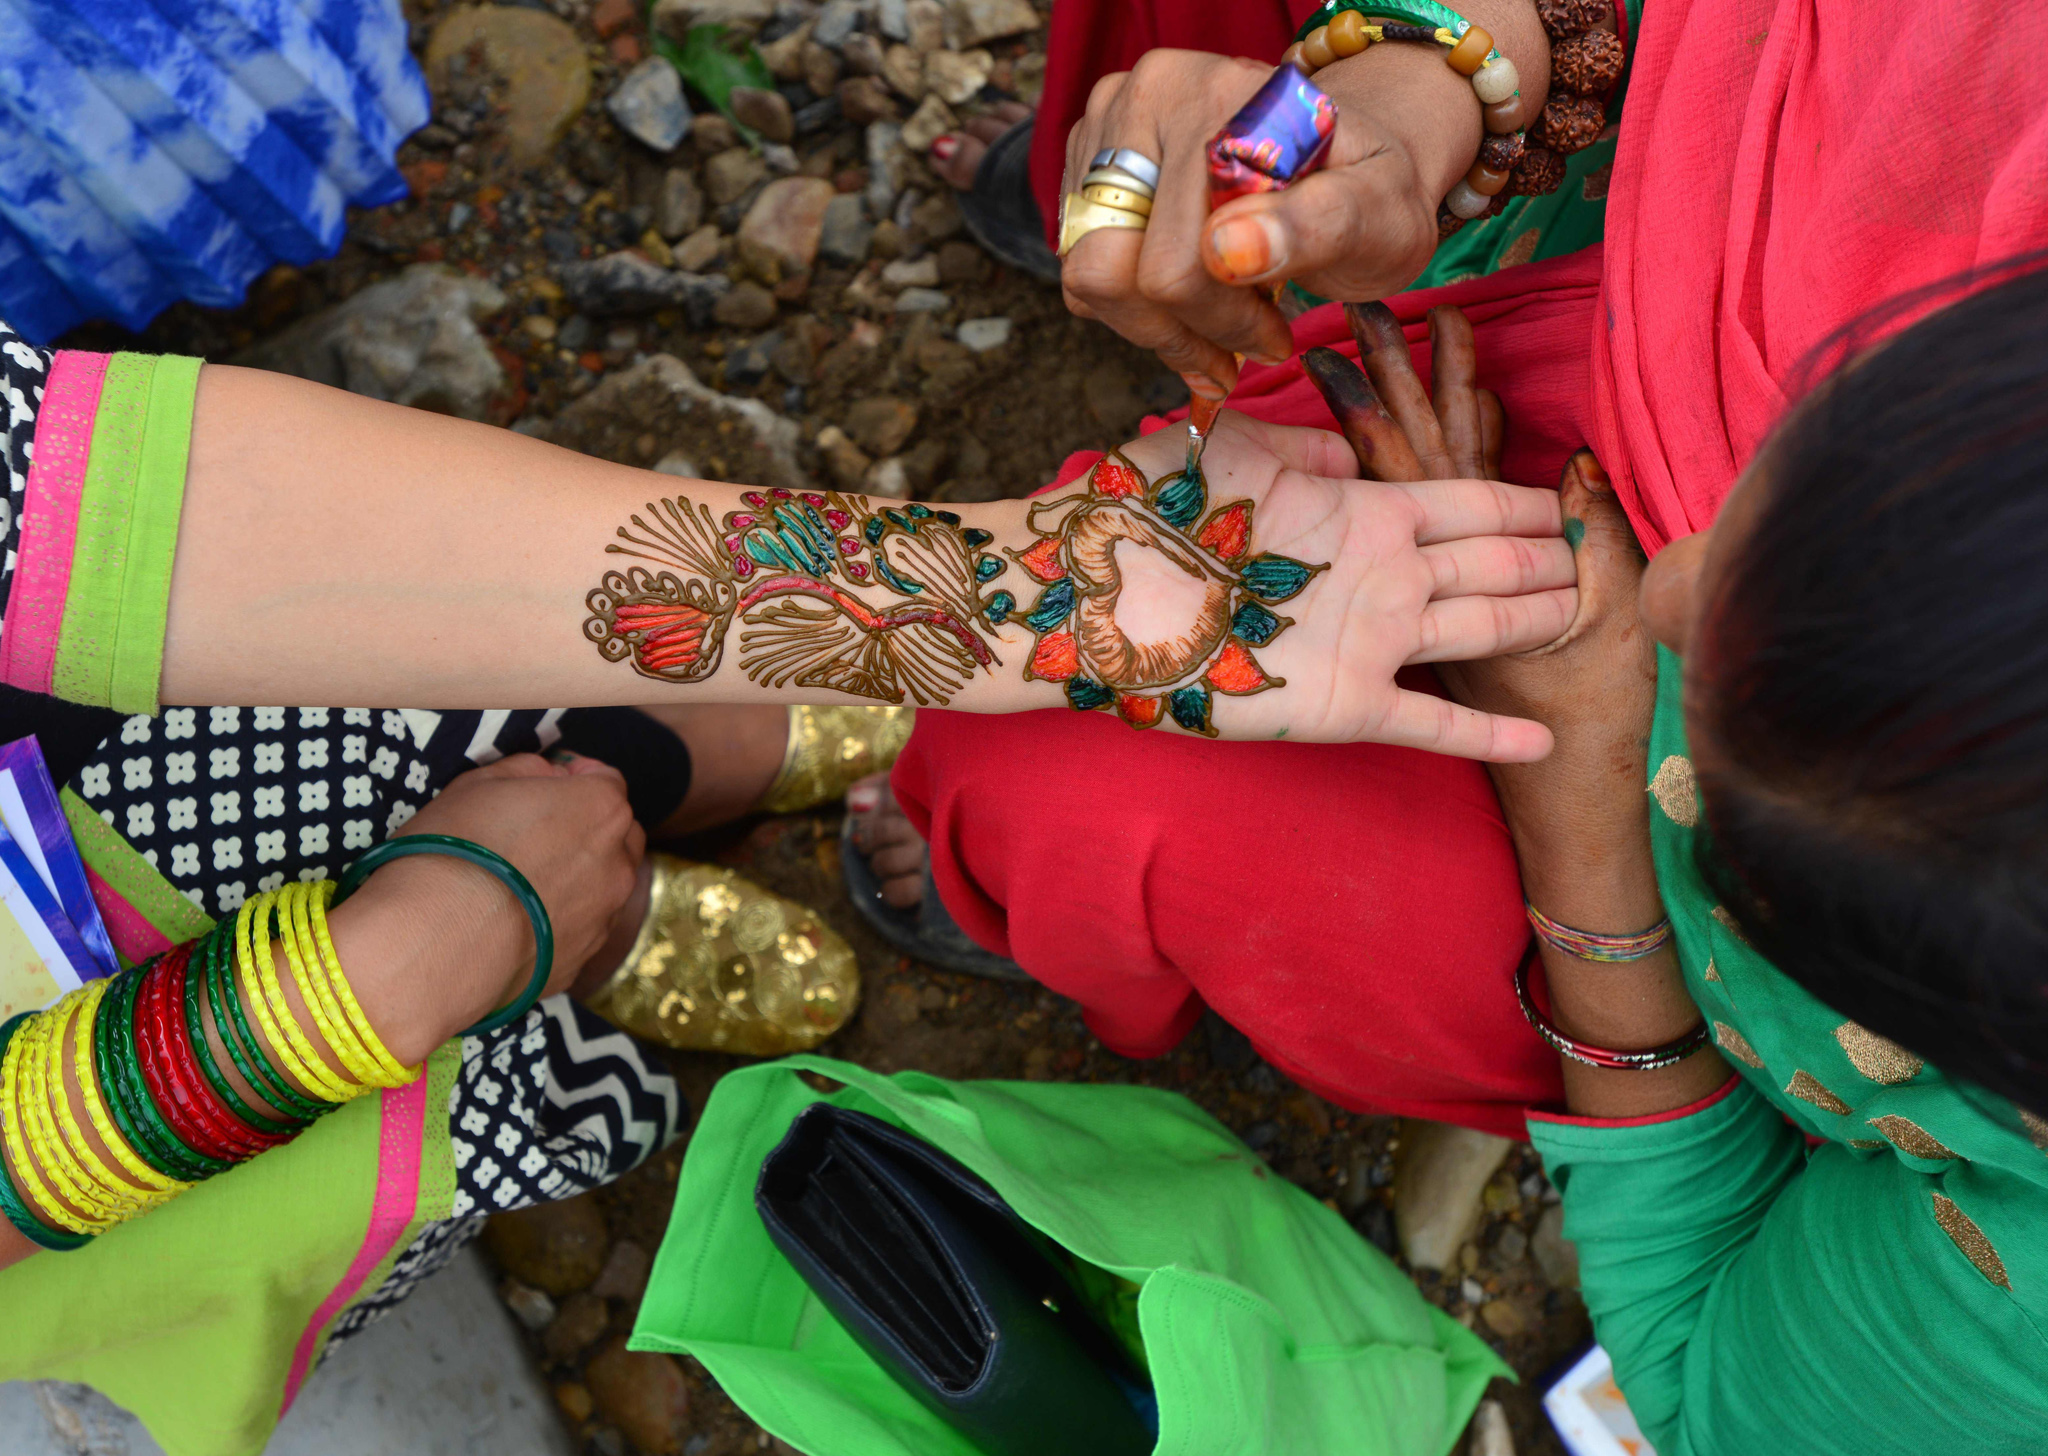 An artist decorates the hand of a Nepalese devotee with mehendi (henna) during Shravan festivities in Kathmandu